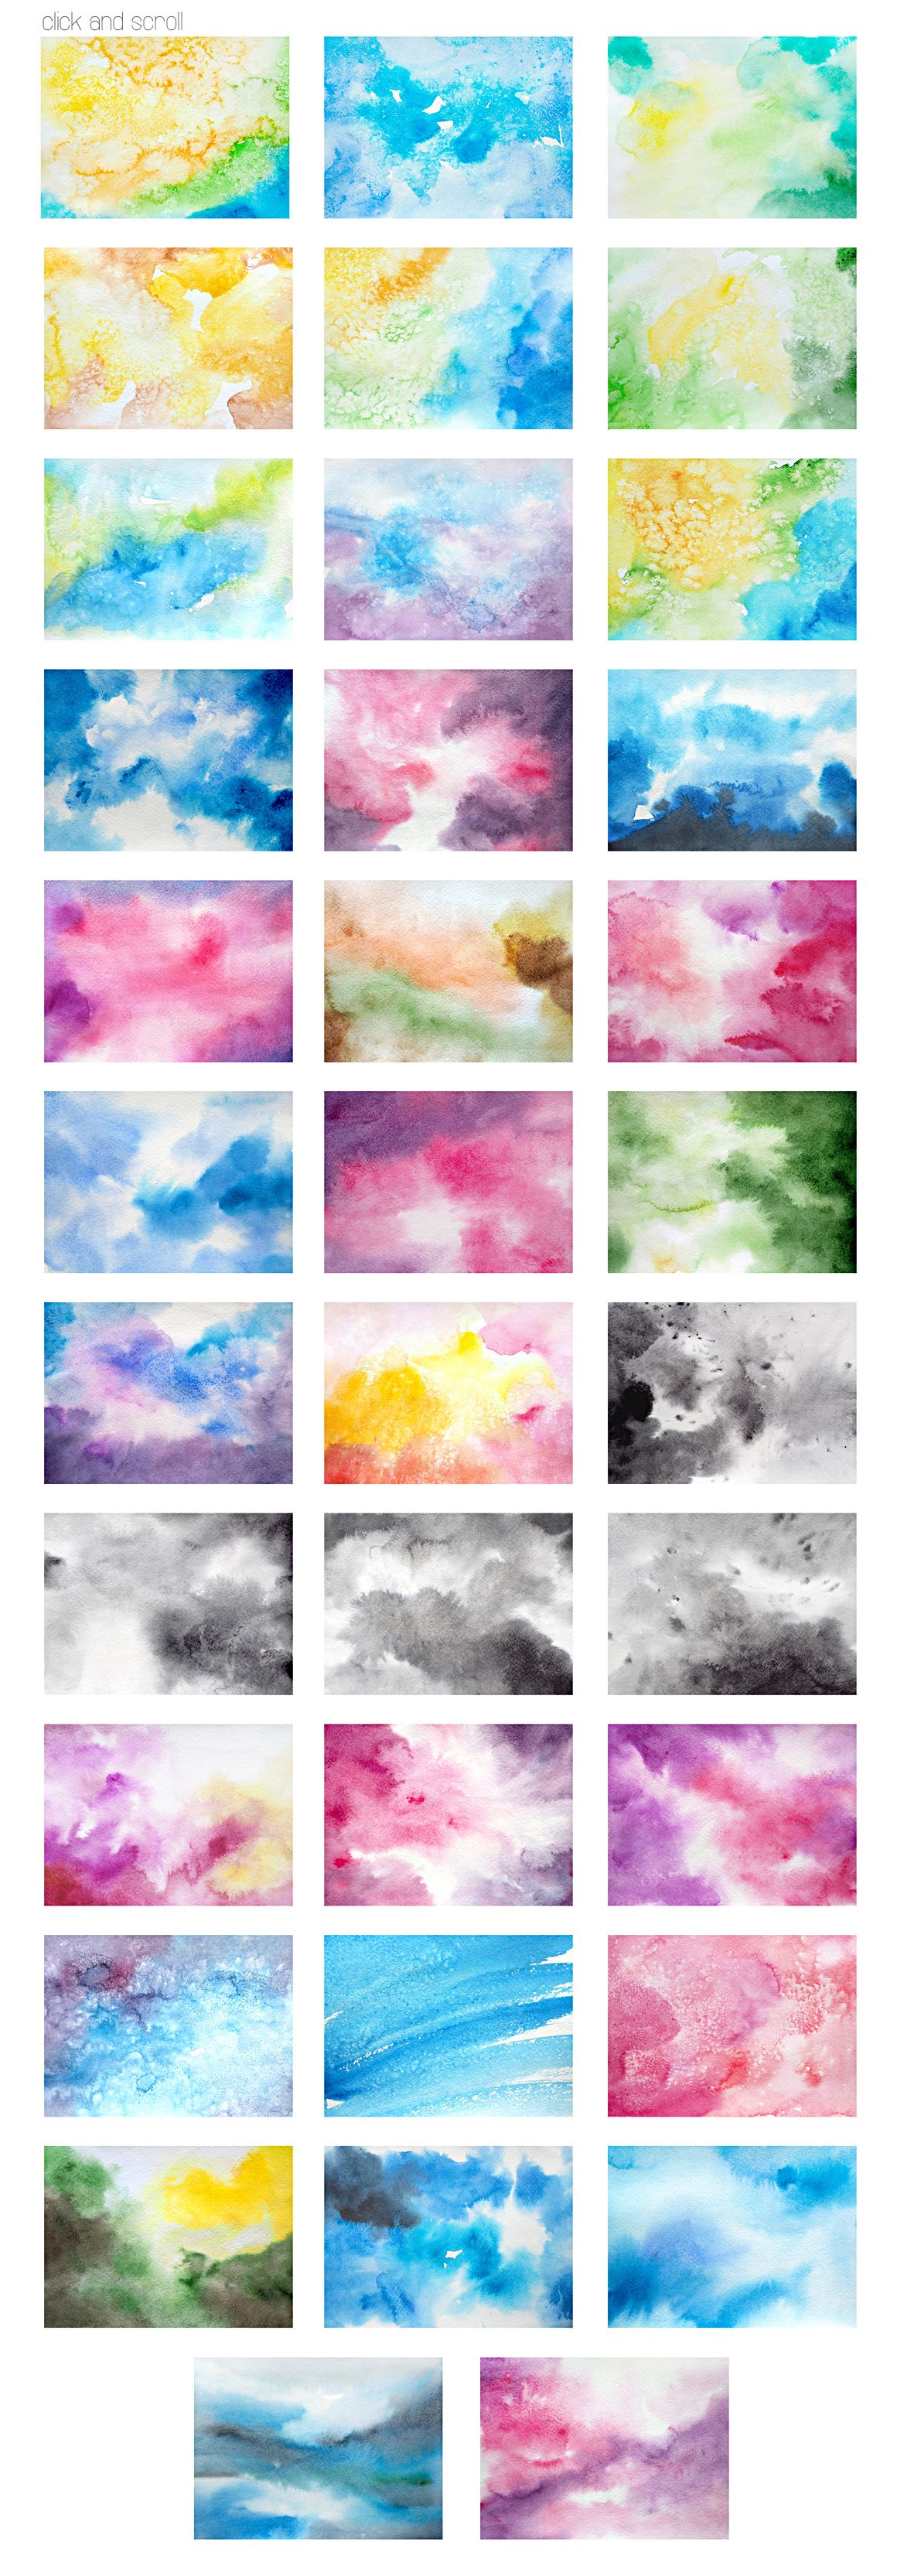 Watercolor Backgrounds In 2020 Watercolor Background Watercolor